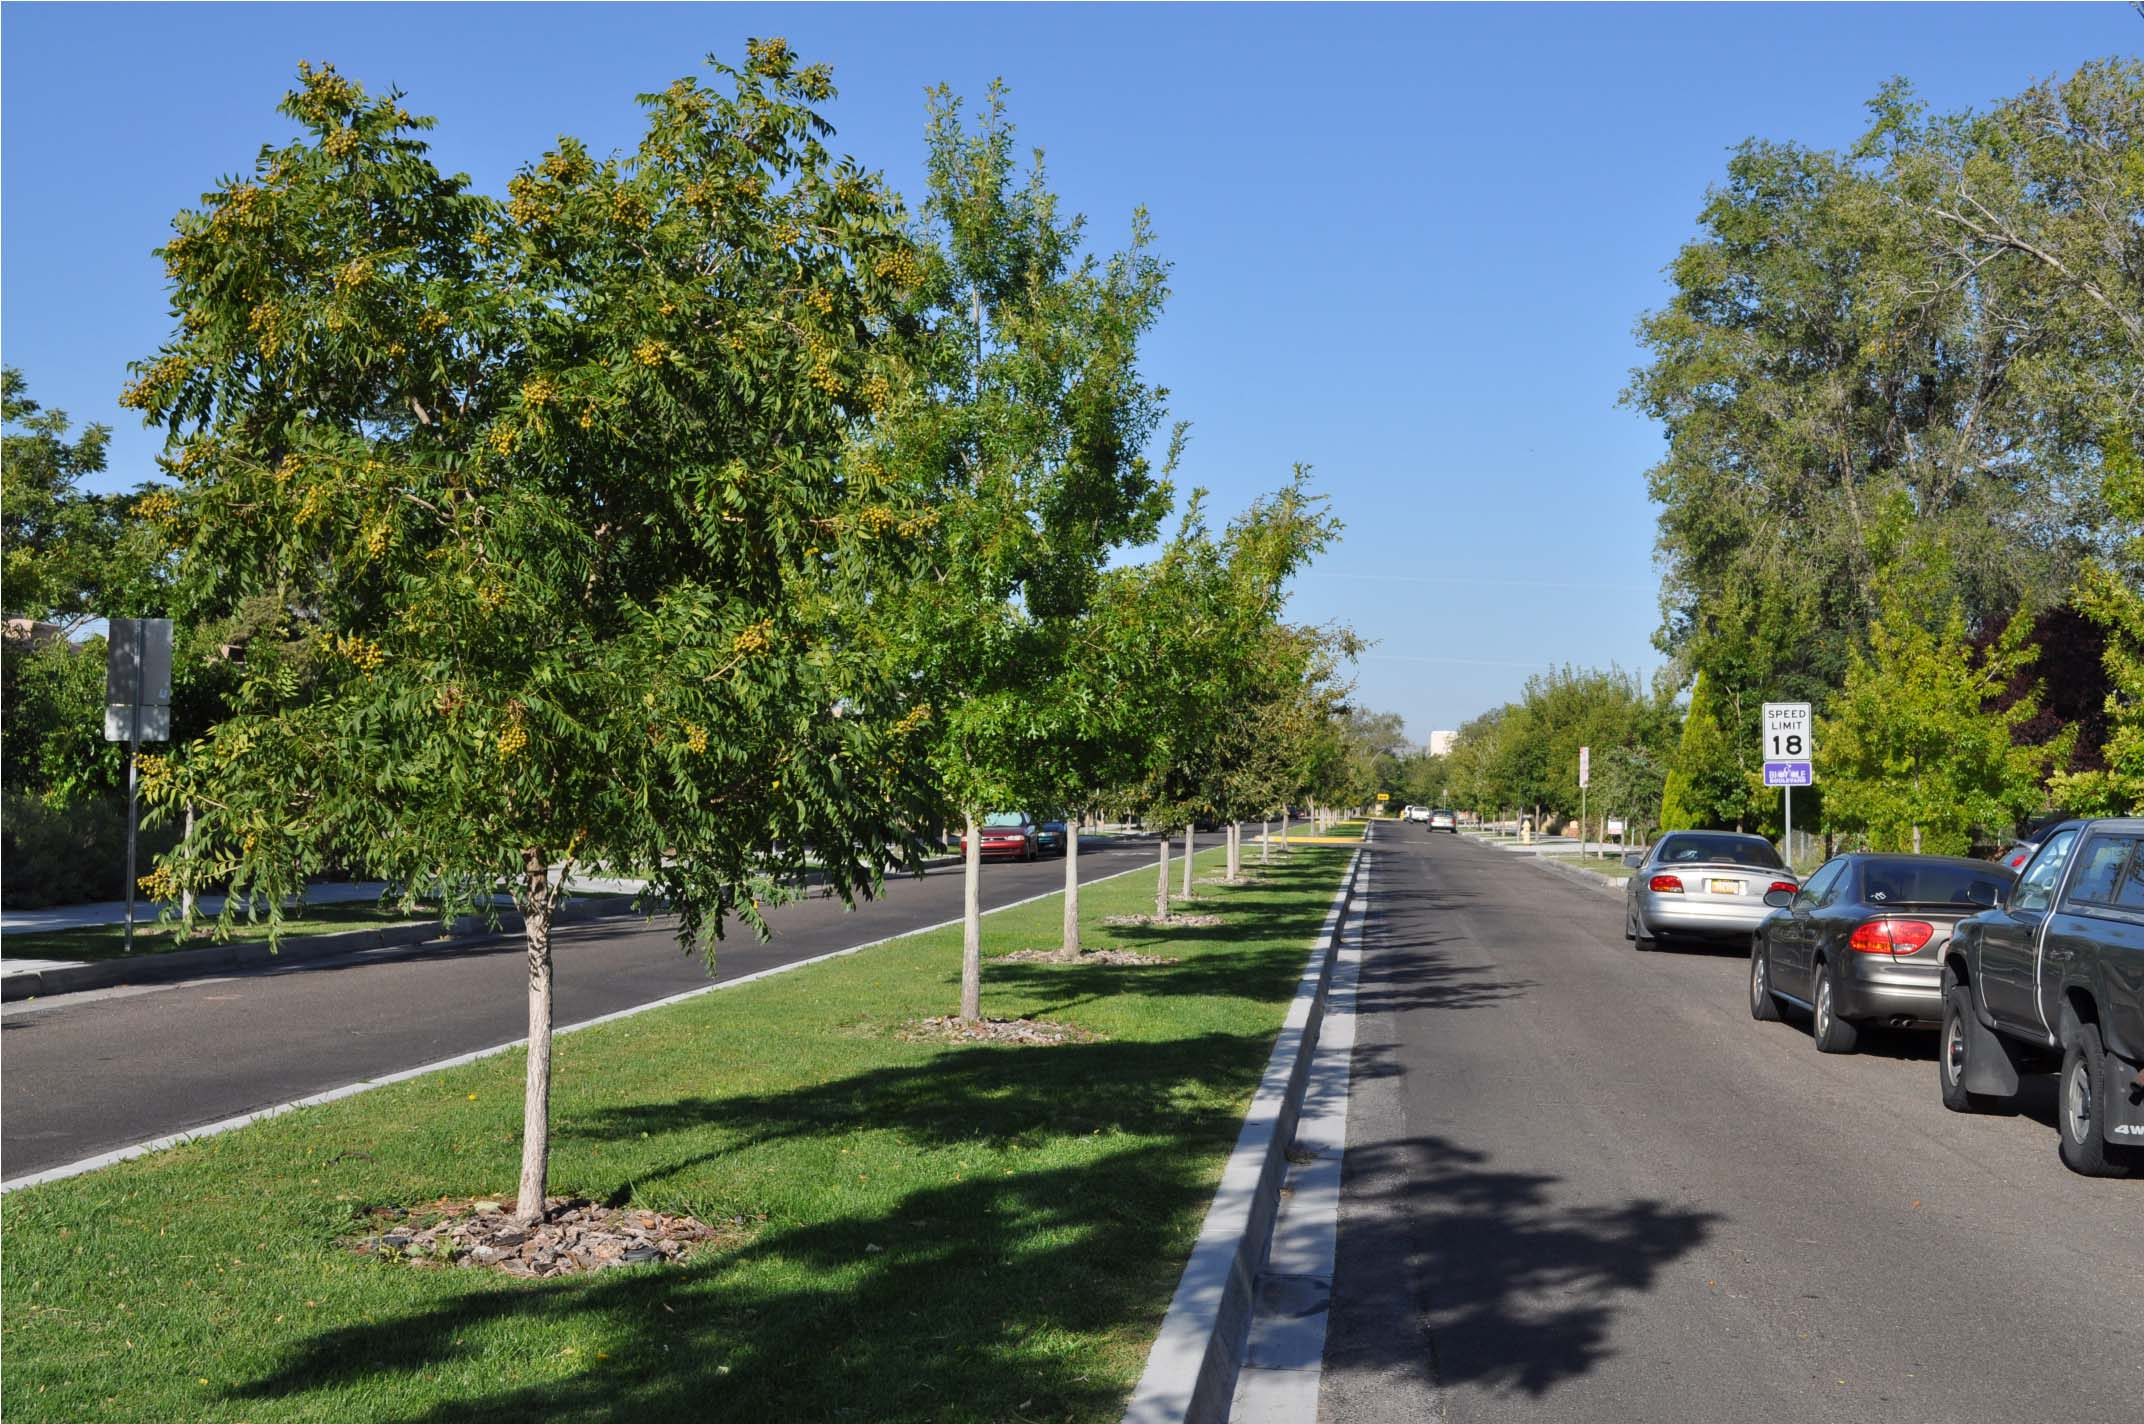 Newly planted parkway trees to continue the historic palette into the future